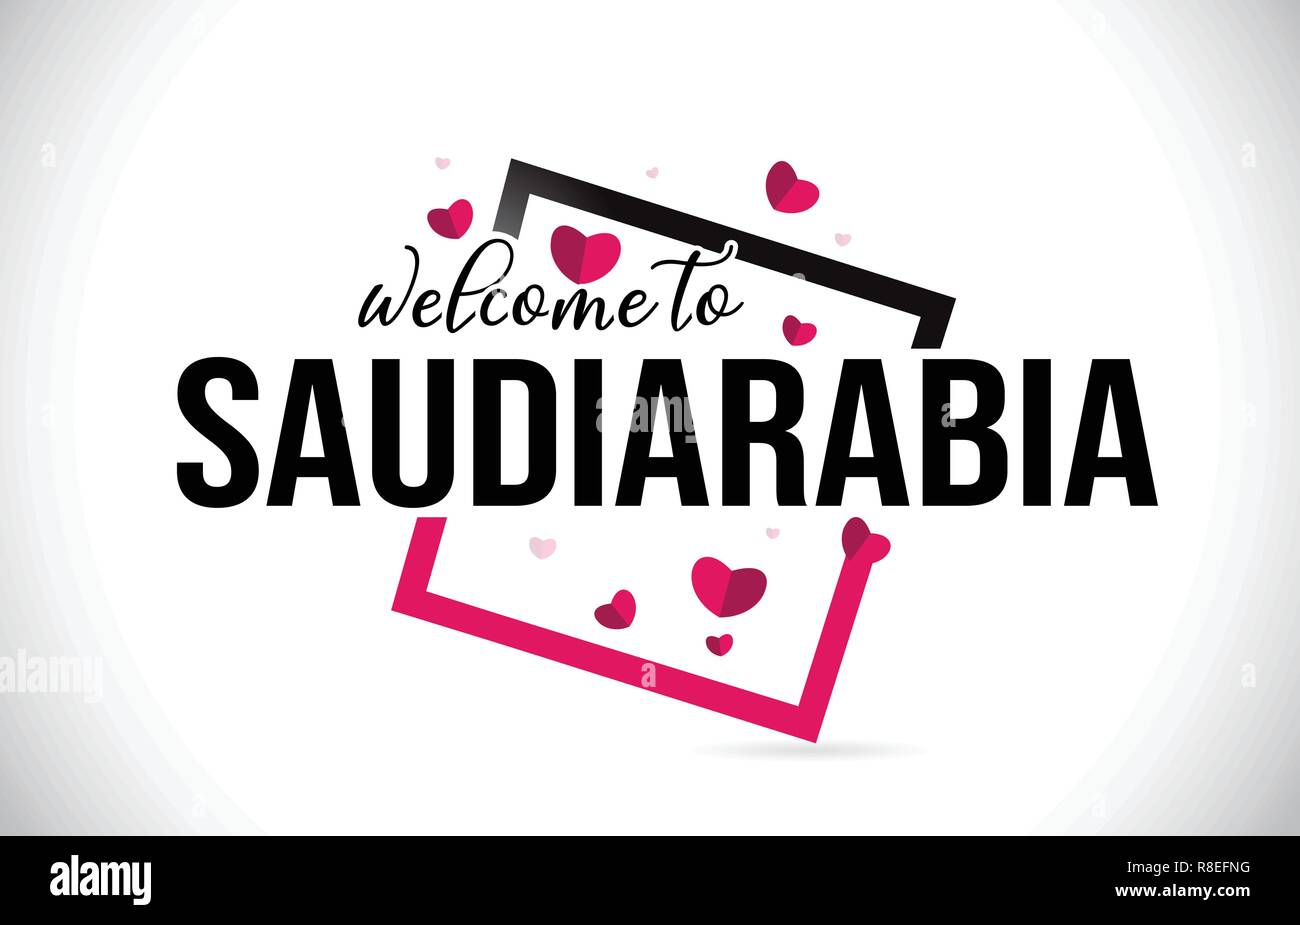 SaudiArabia Welcome To Word Text with Handwritten Font and  Red Hearts Square Design Illustration Vector. - Stock Image